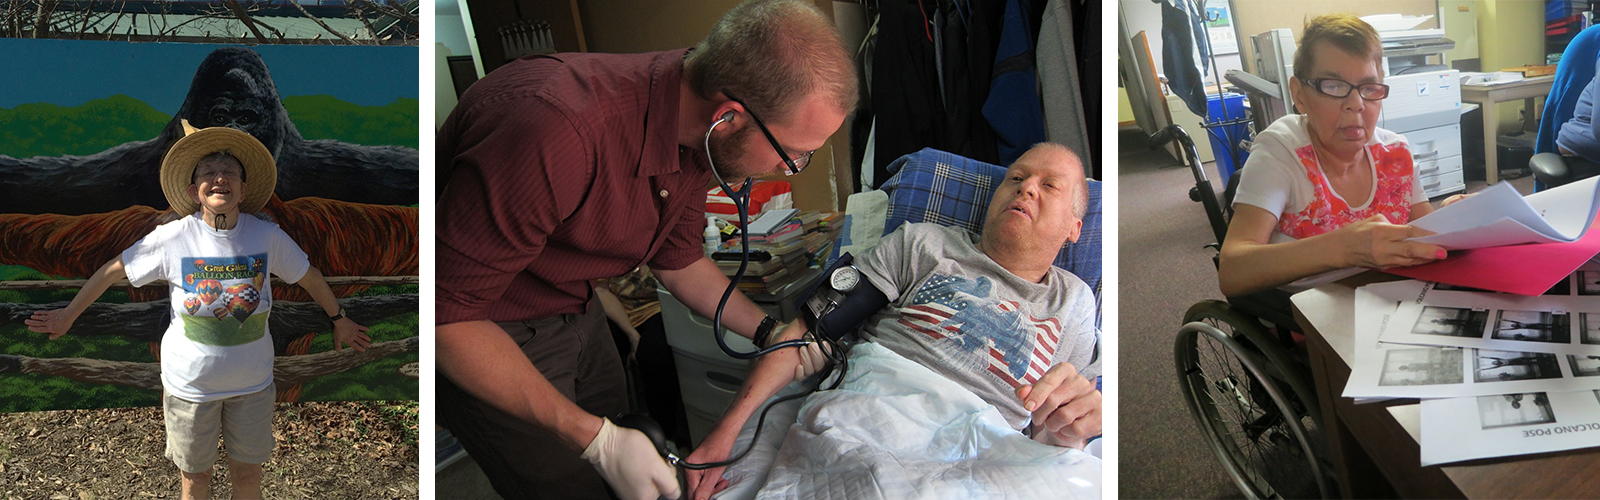 Image of a person getting their blood pressure checked.